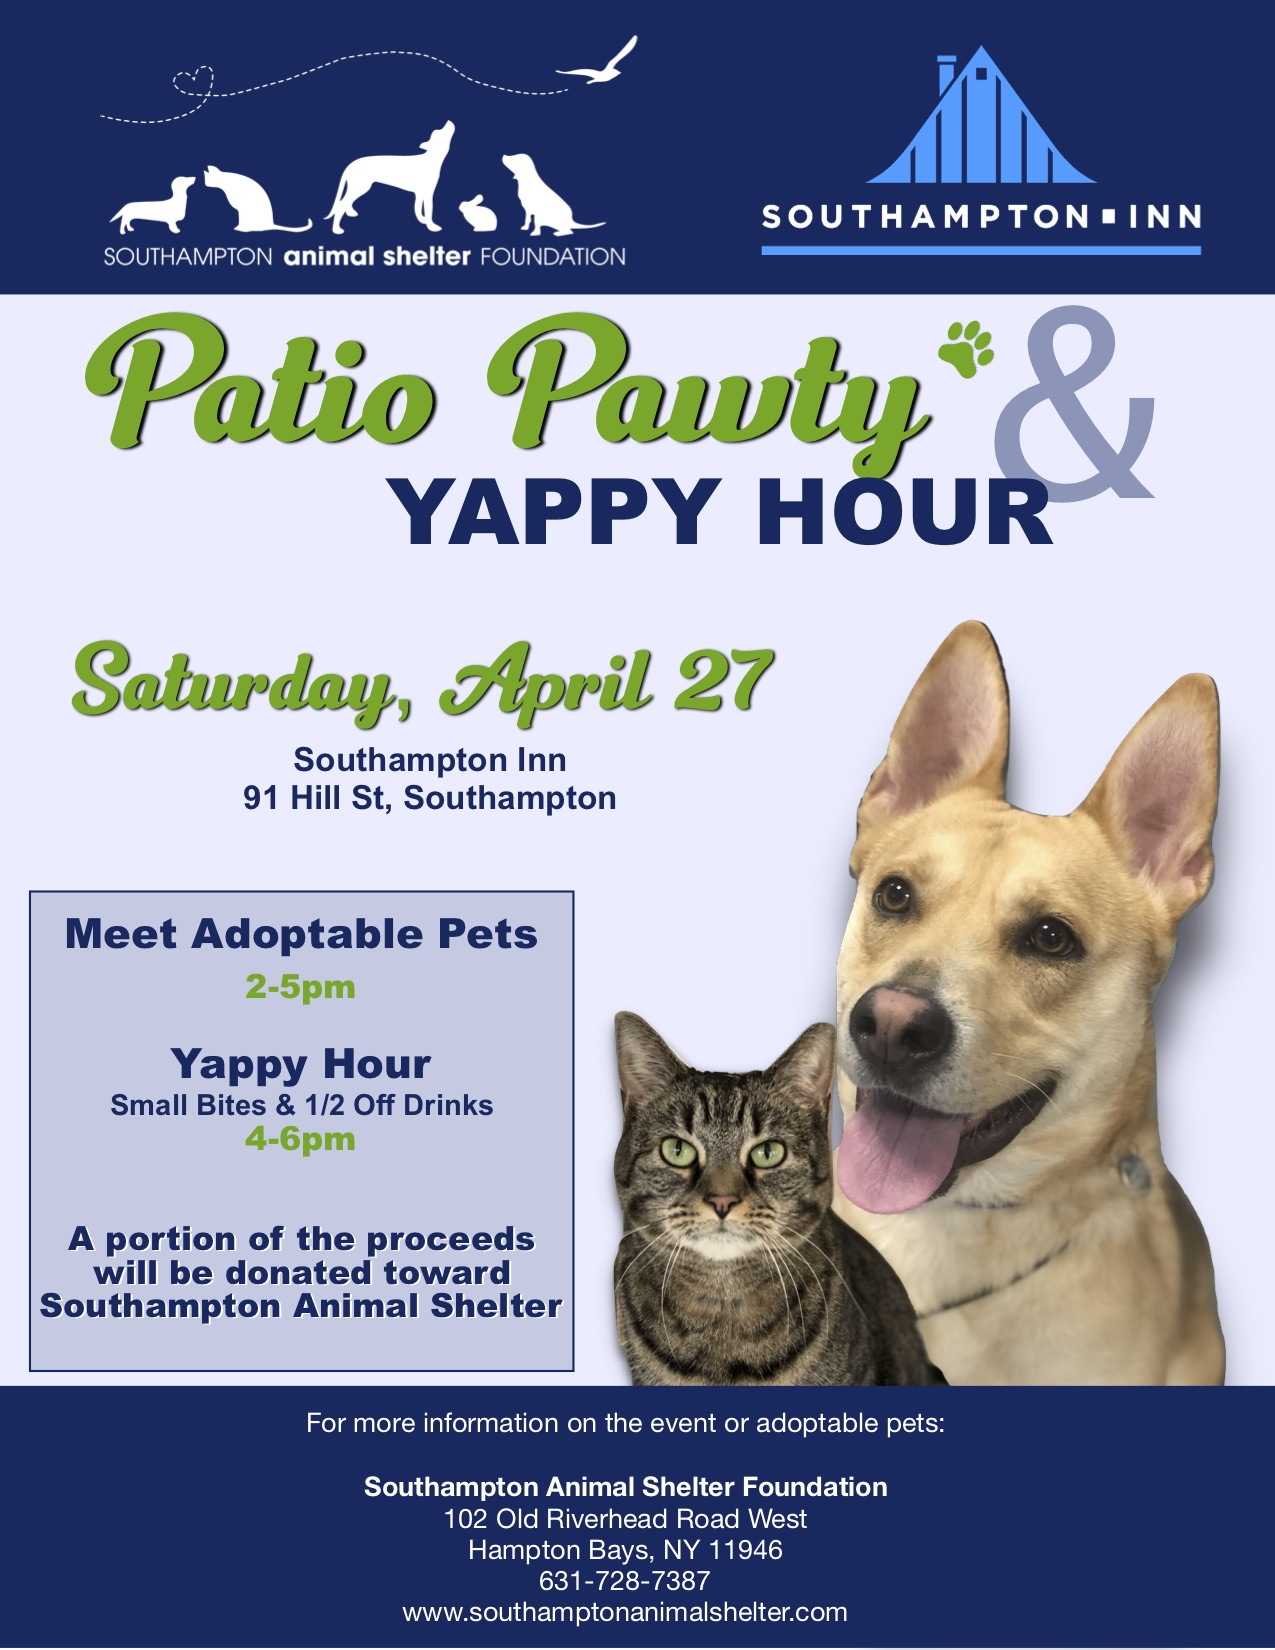 Patio Pawty & Yappy Hour